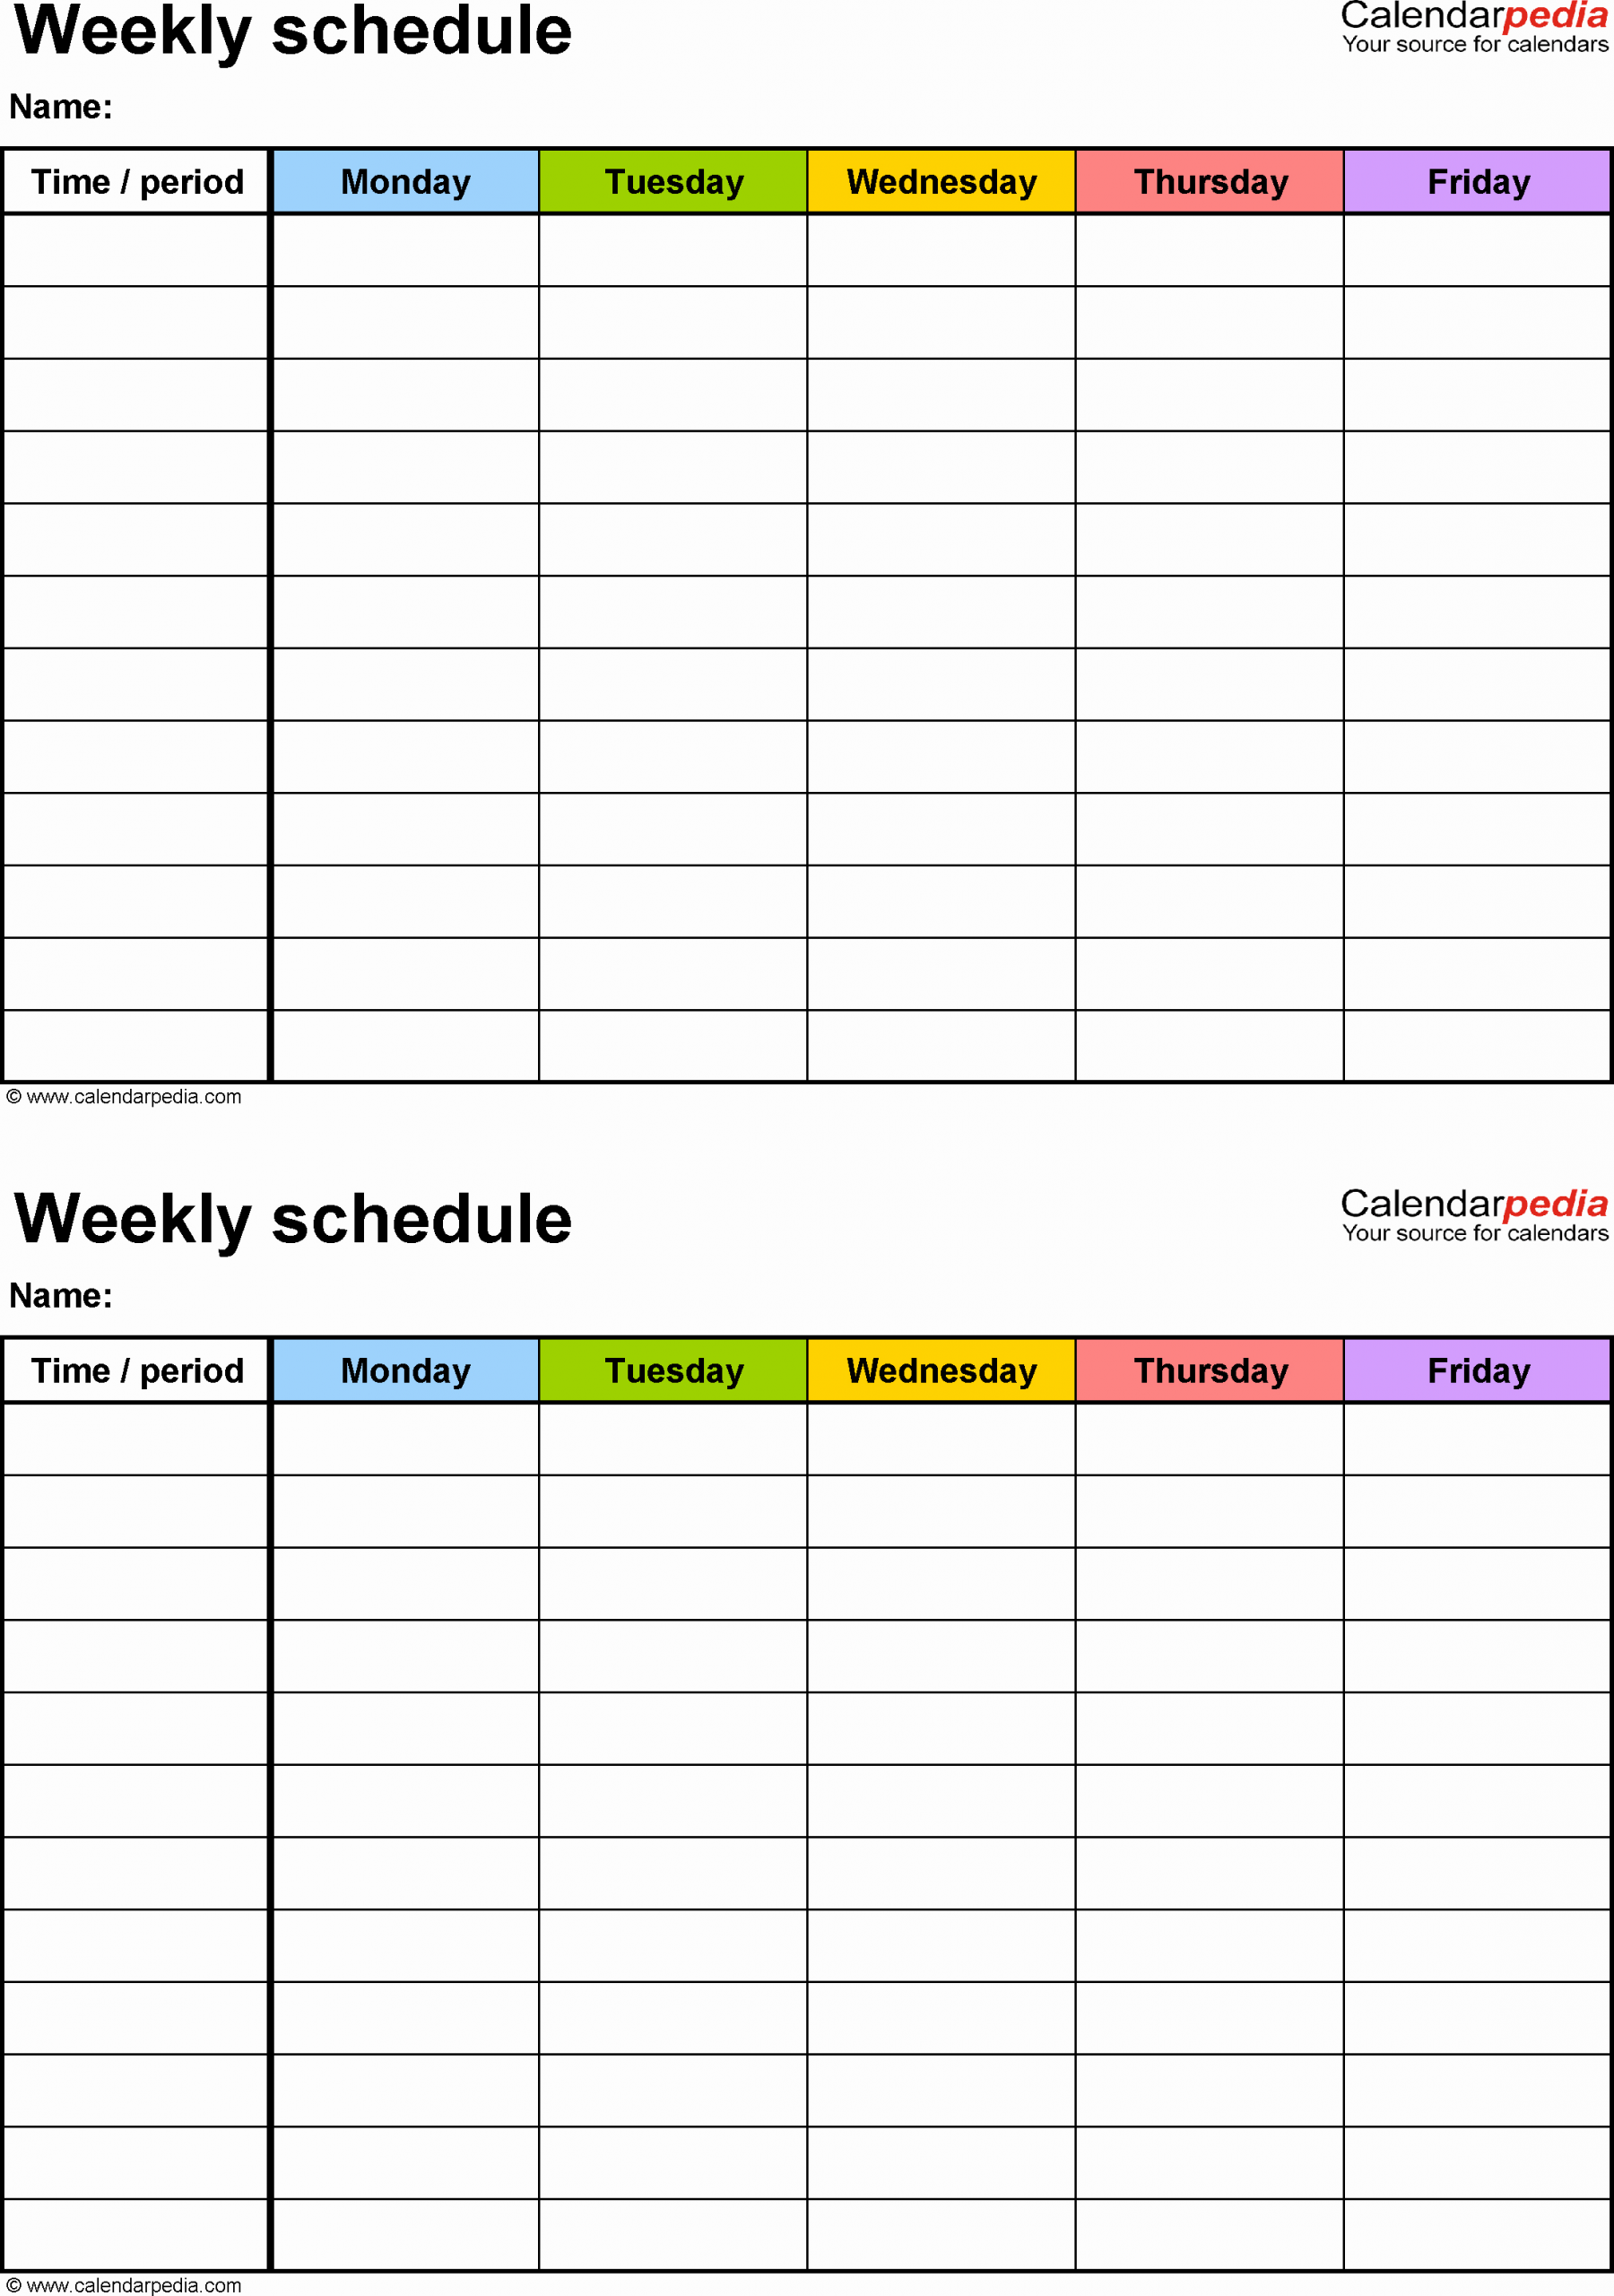 Monday to Friday Schedule Template Awesome Free Weekly Schedule Templates for Word 18 Templates